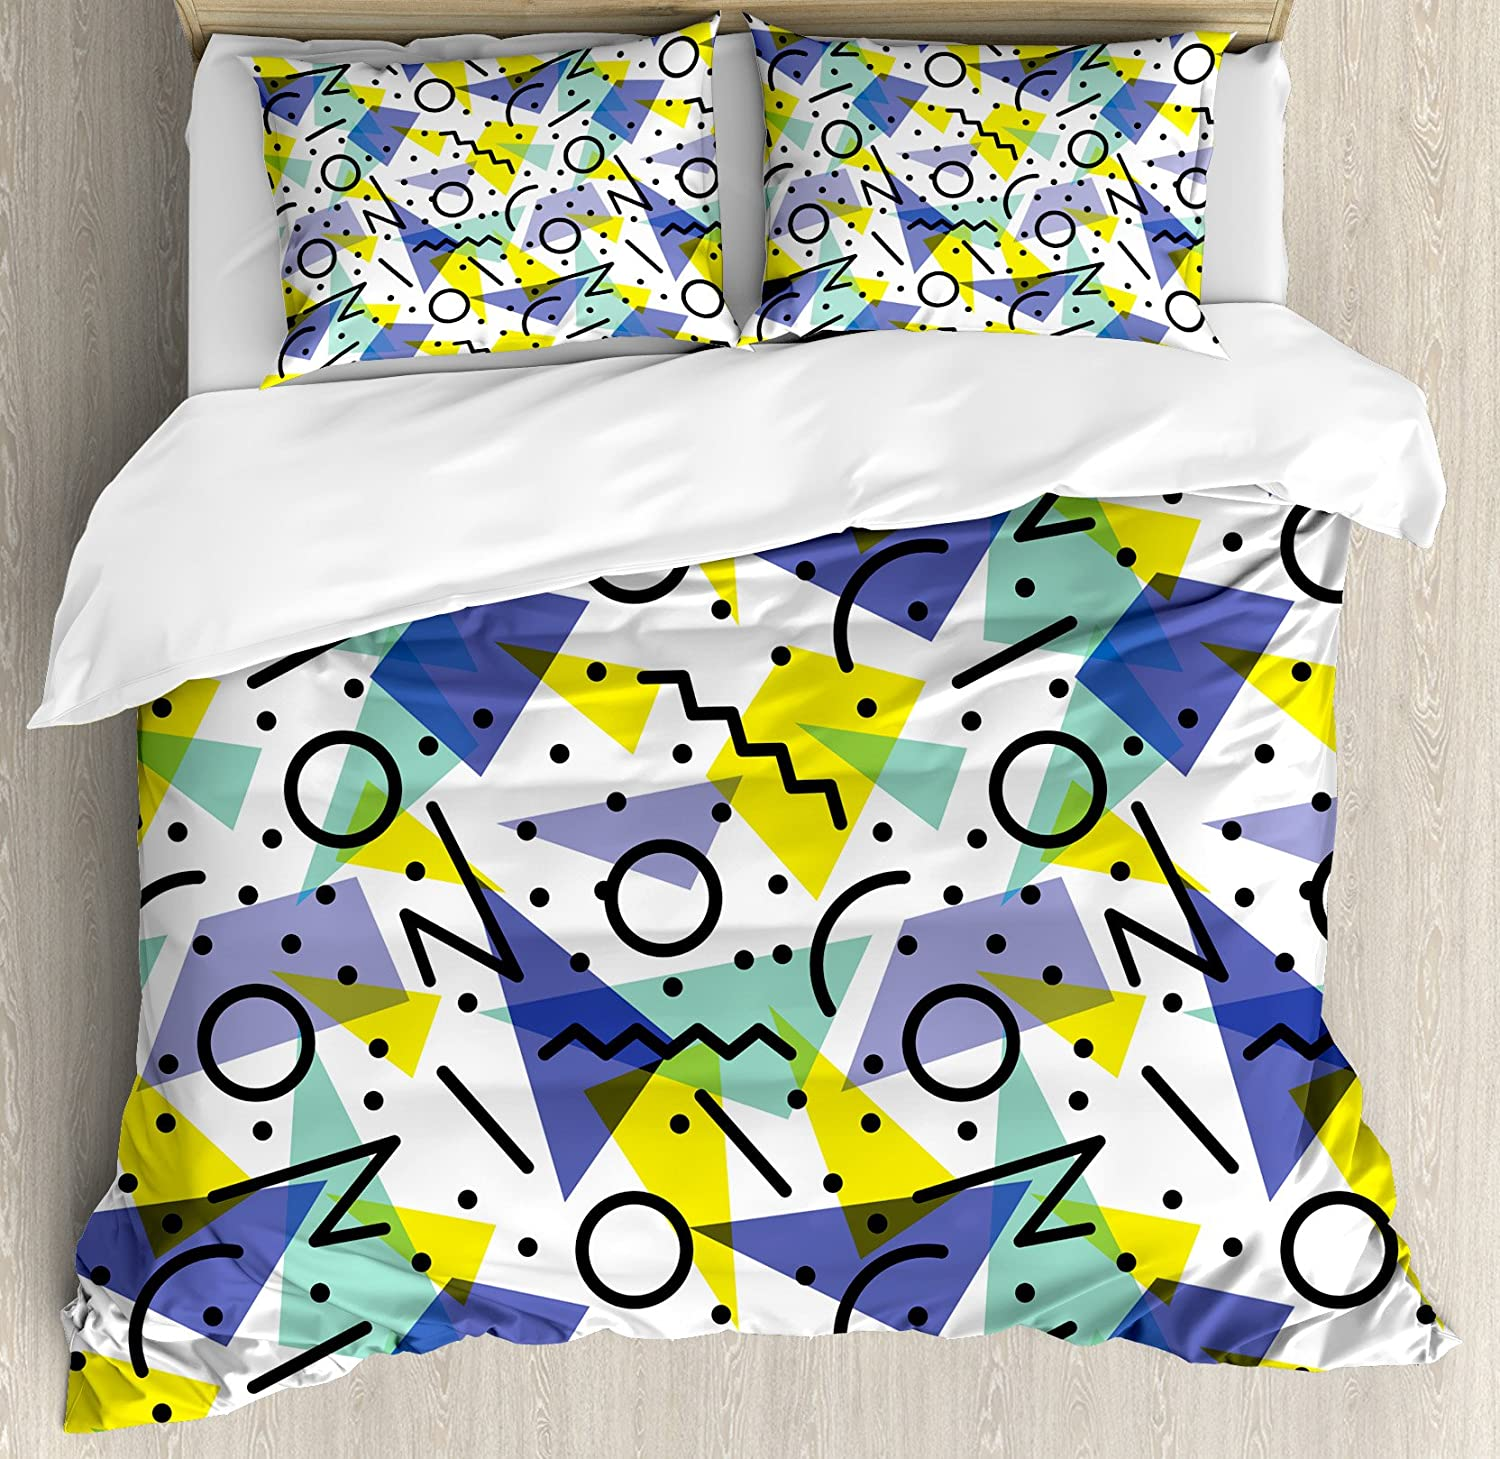 Ambesonne Modern Duvet Cover Set, Geometrical Retro 80s Themed Image with Lines Circles and Spots Print, Decorative 3 Piece Bedding Set with 2 Pillow Shams, Queen Size, Yellow Black